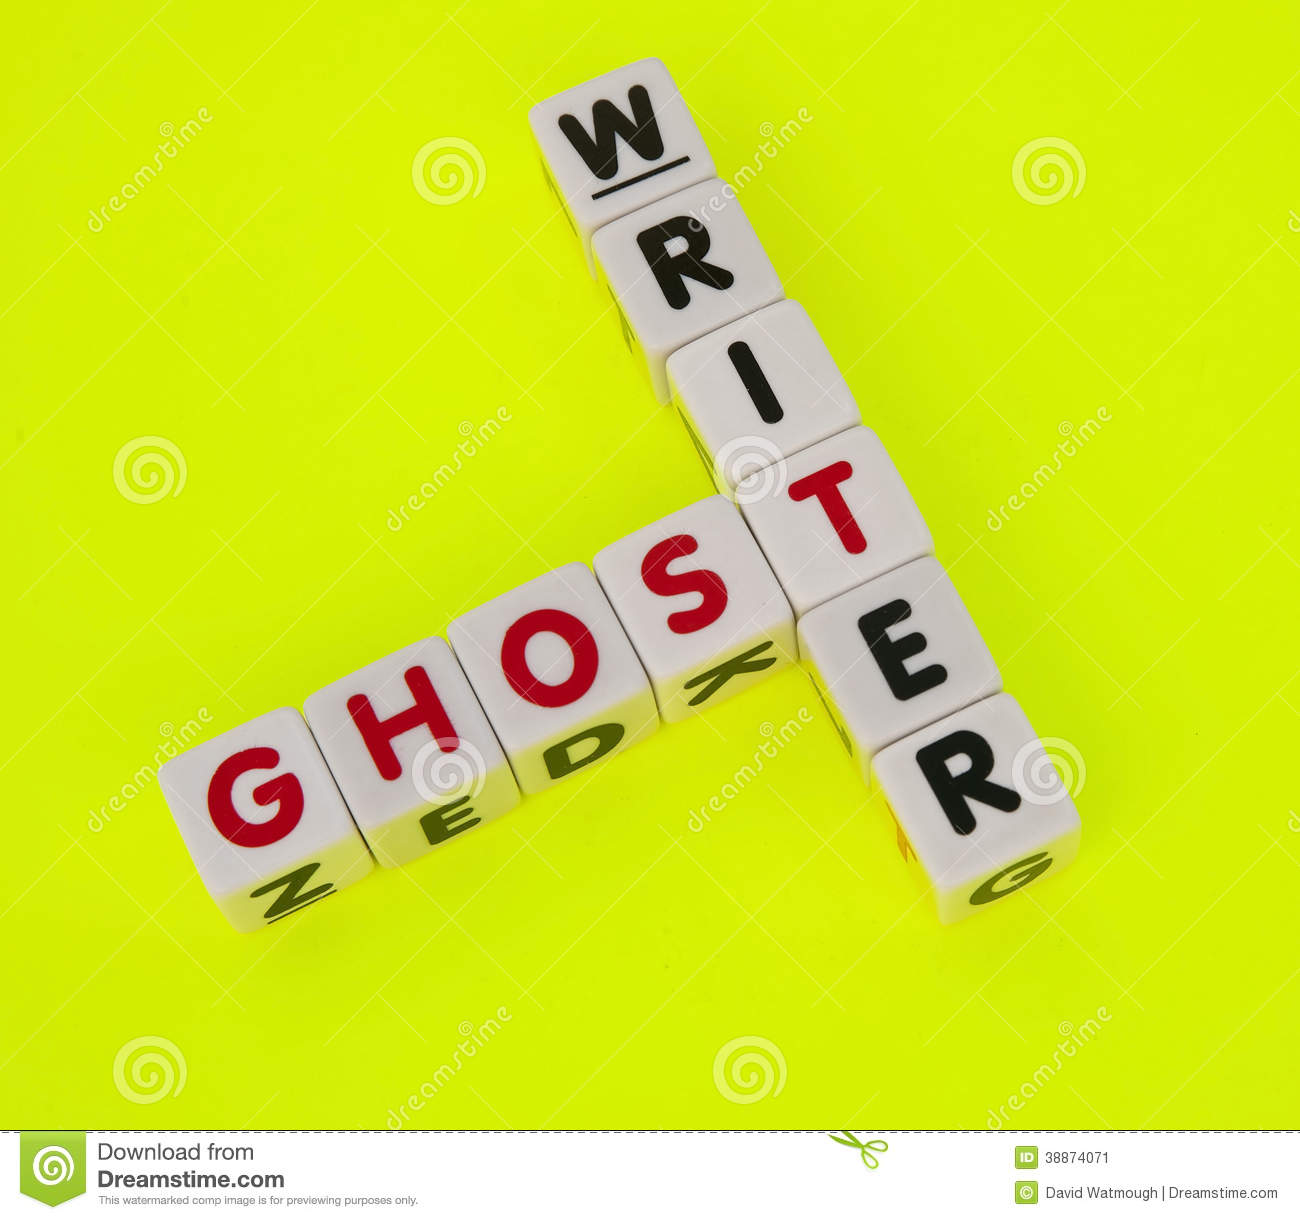 Ghost writing service crossword